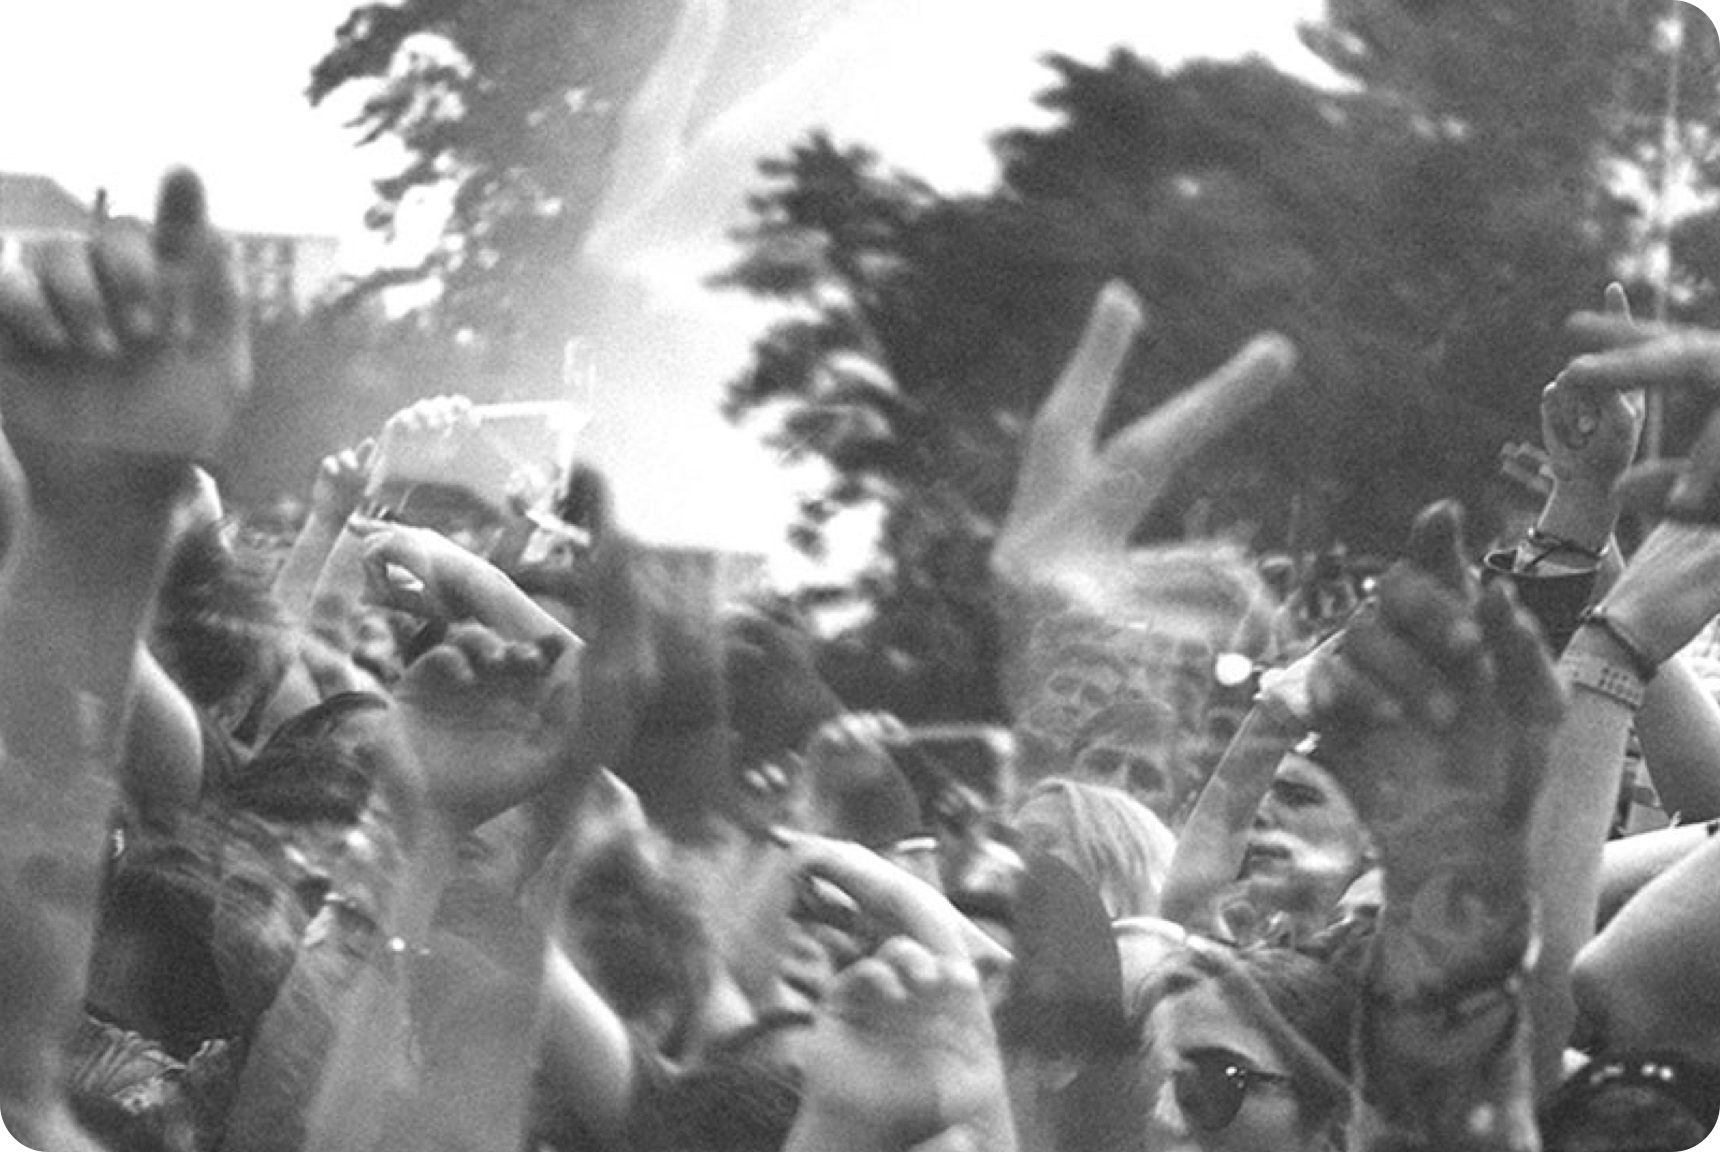 A blurred shot of arms extended in the air